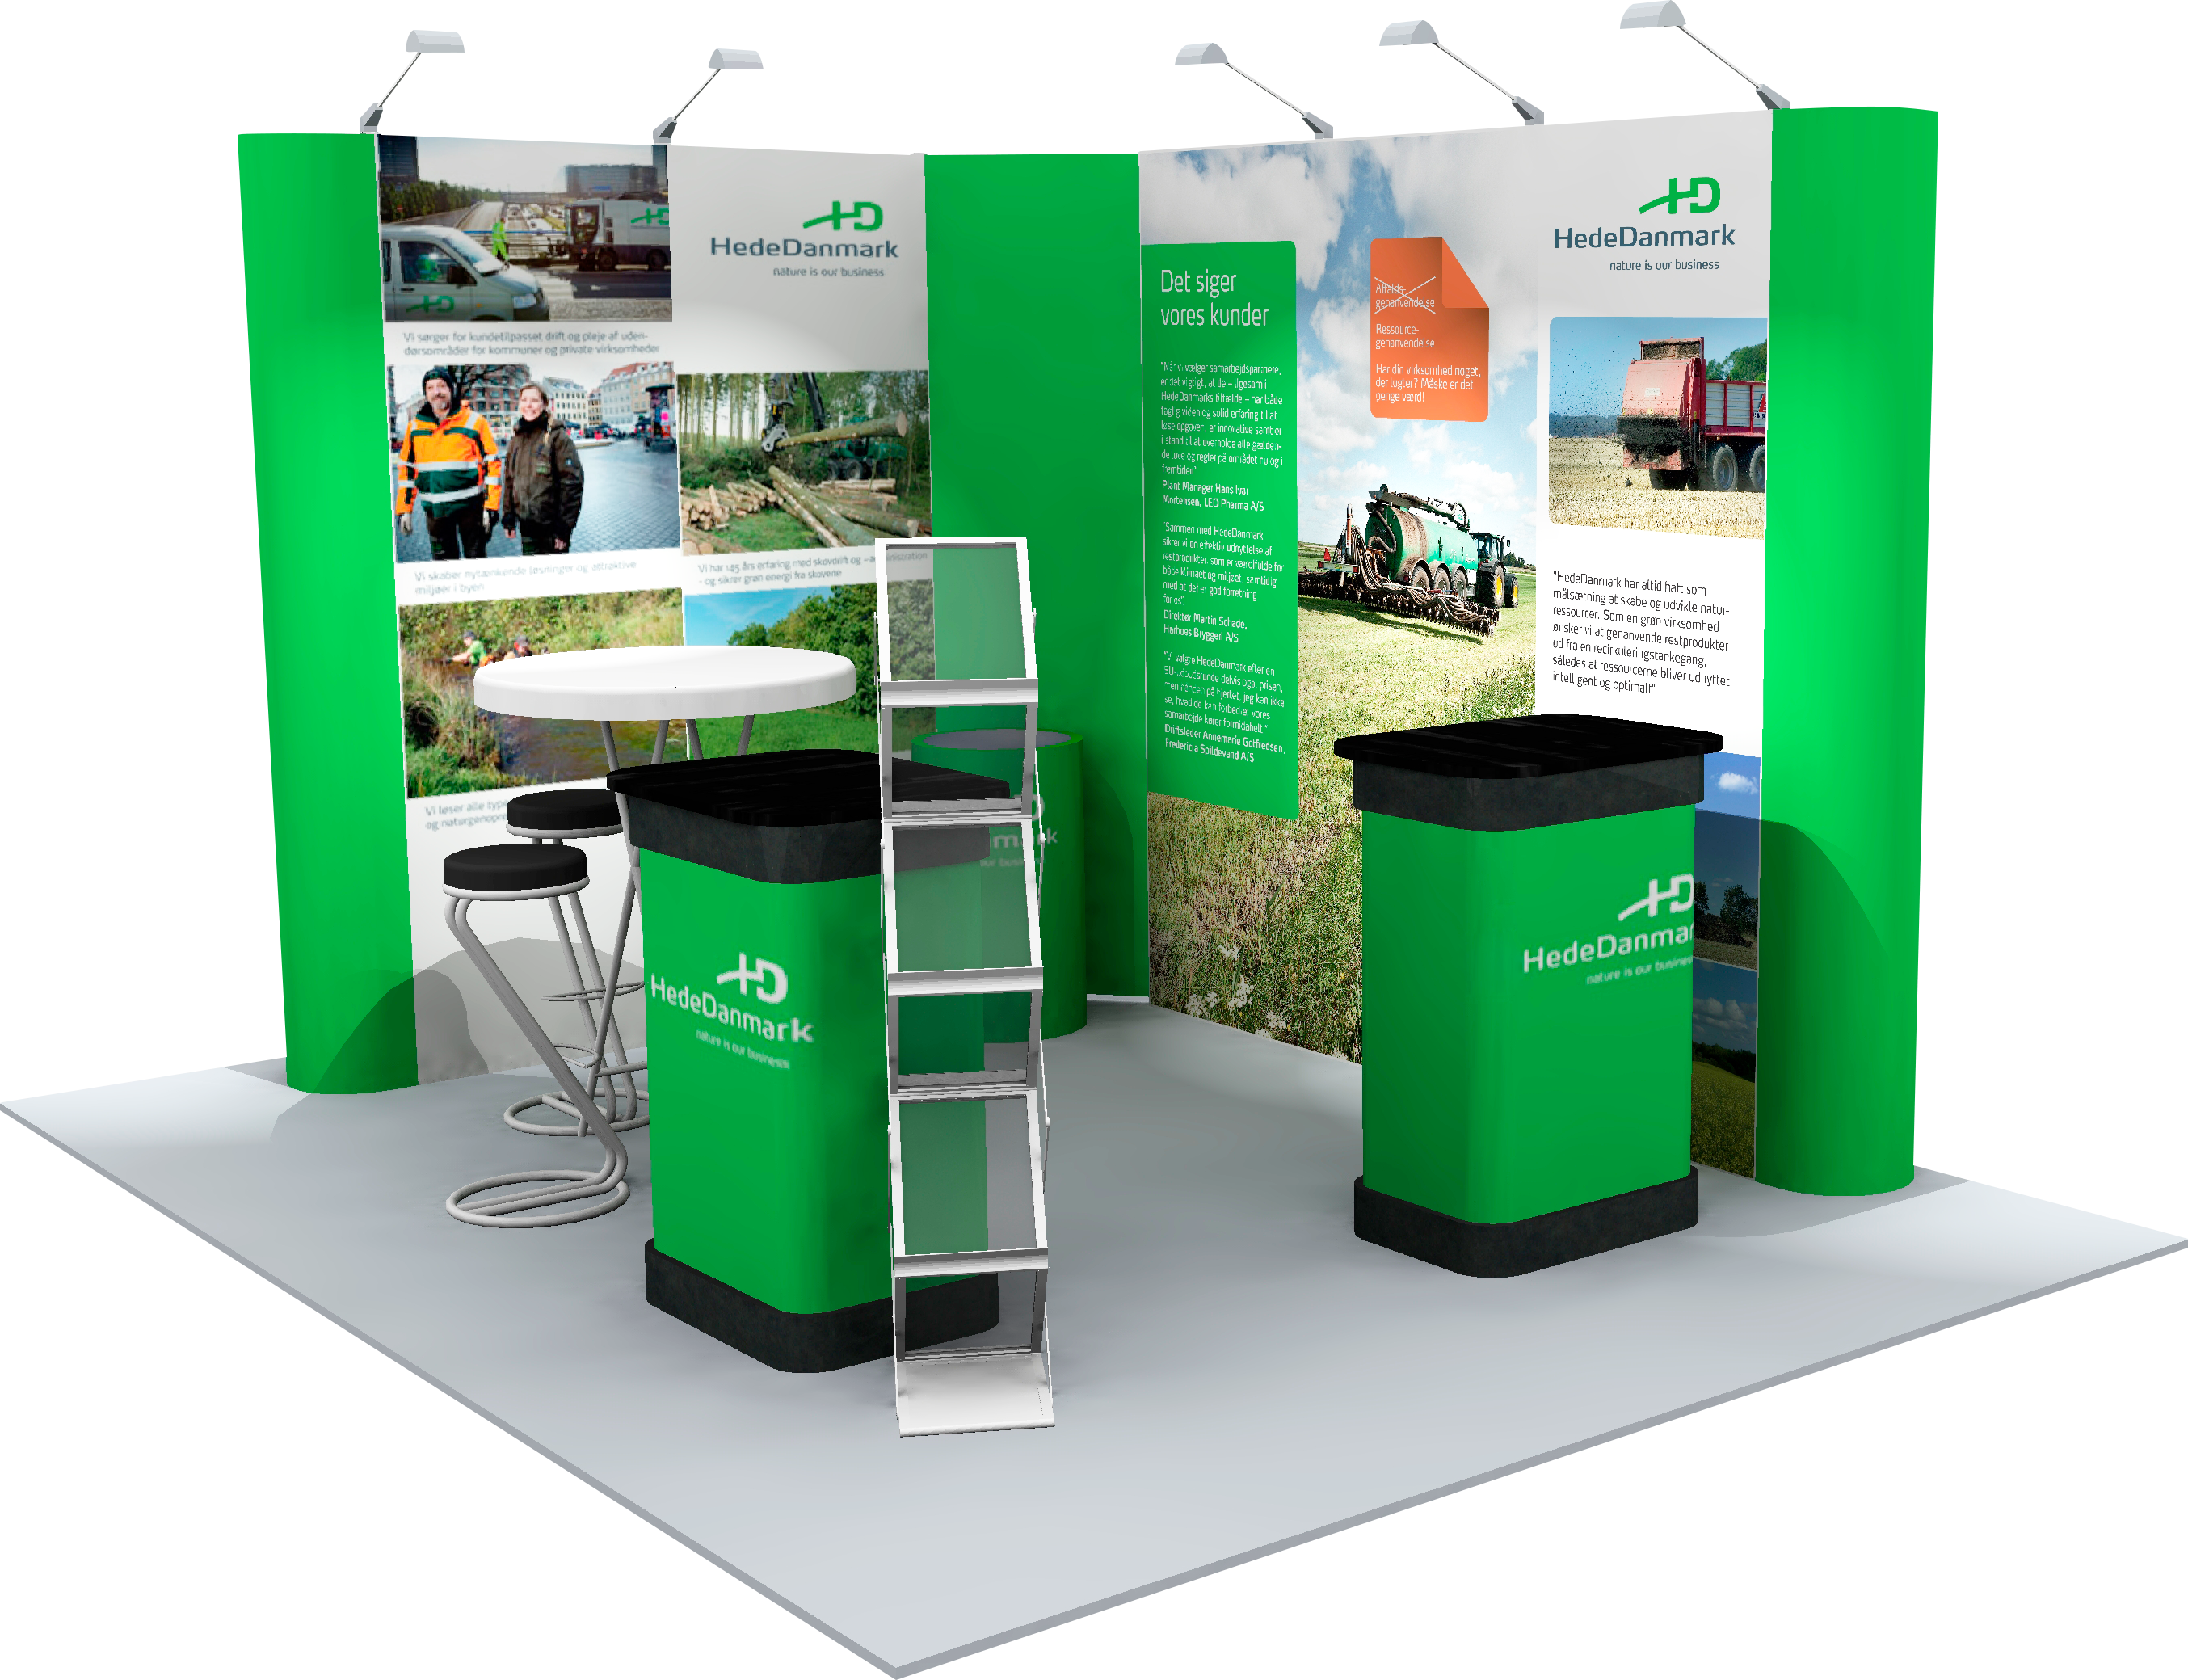 3D_hededk_messestand